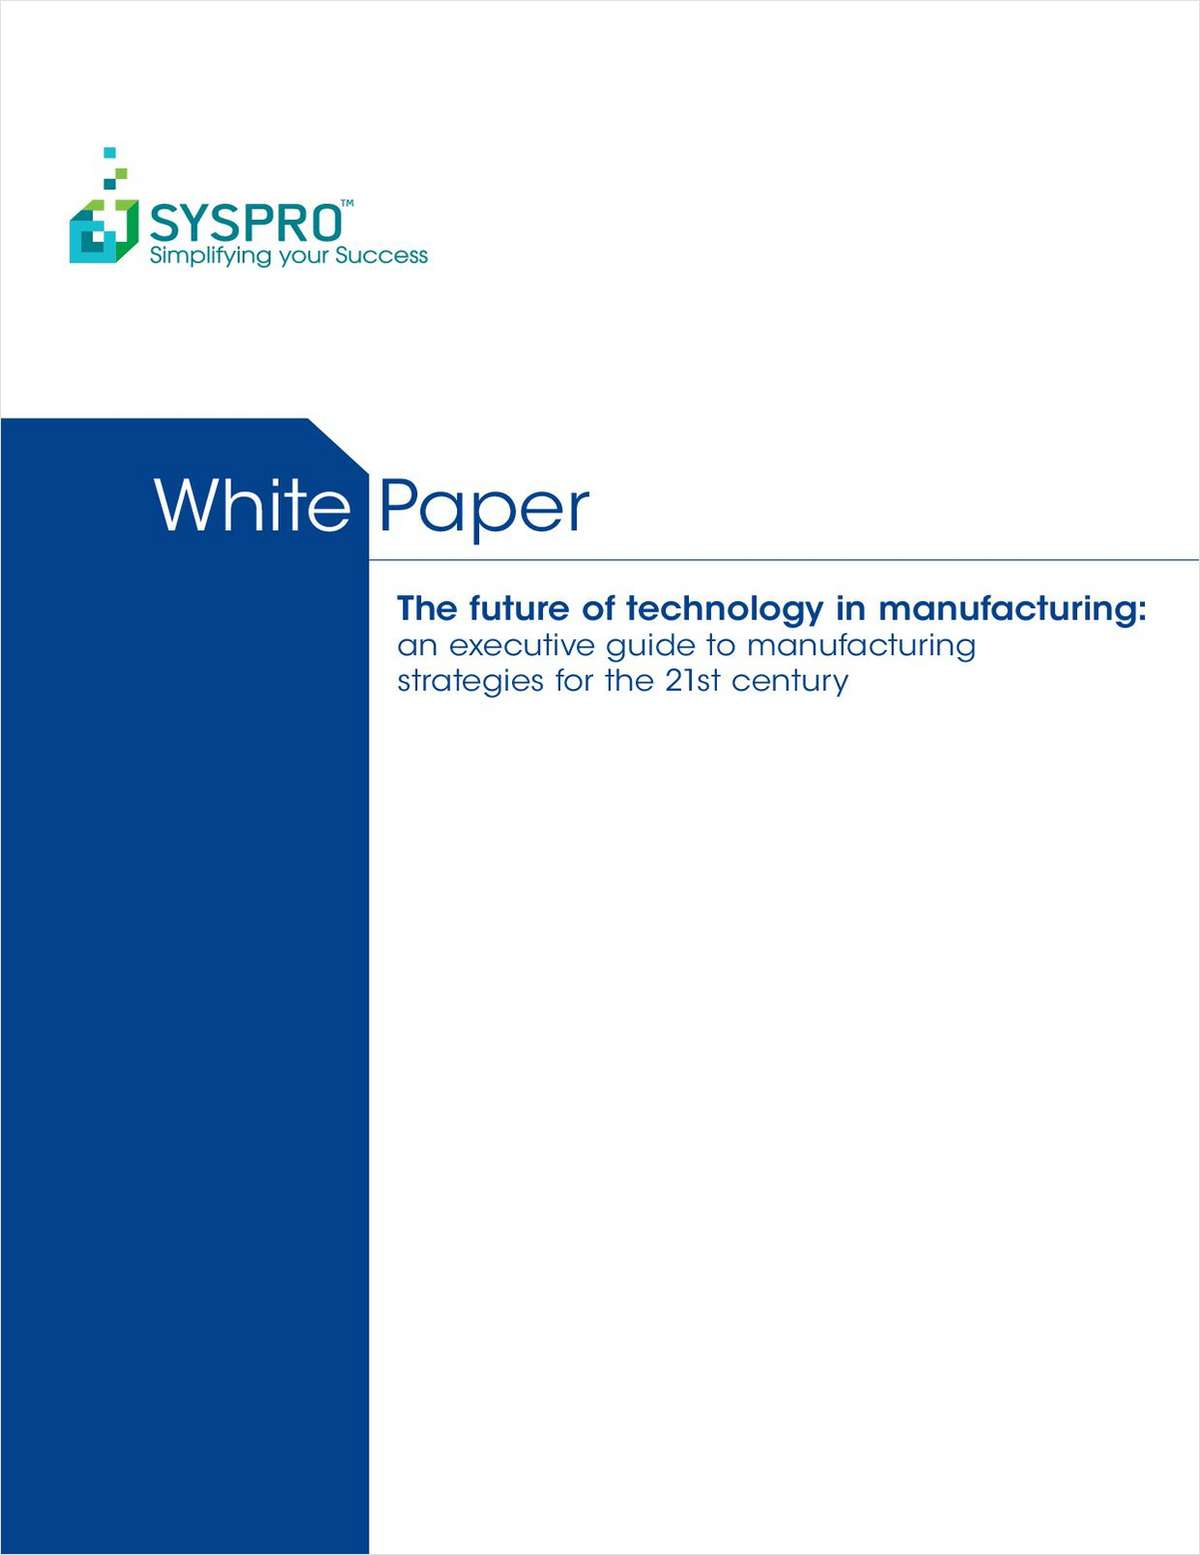 The Future of Technology in Manufacturing